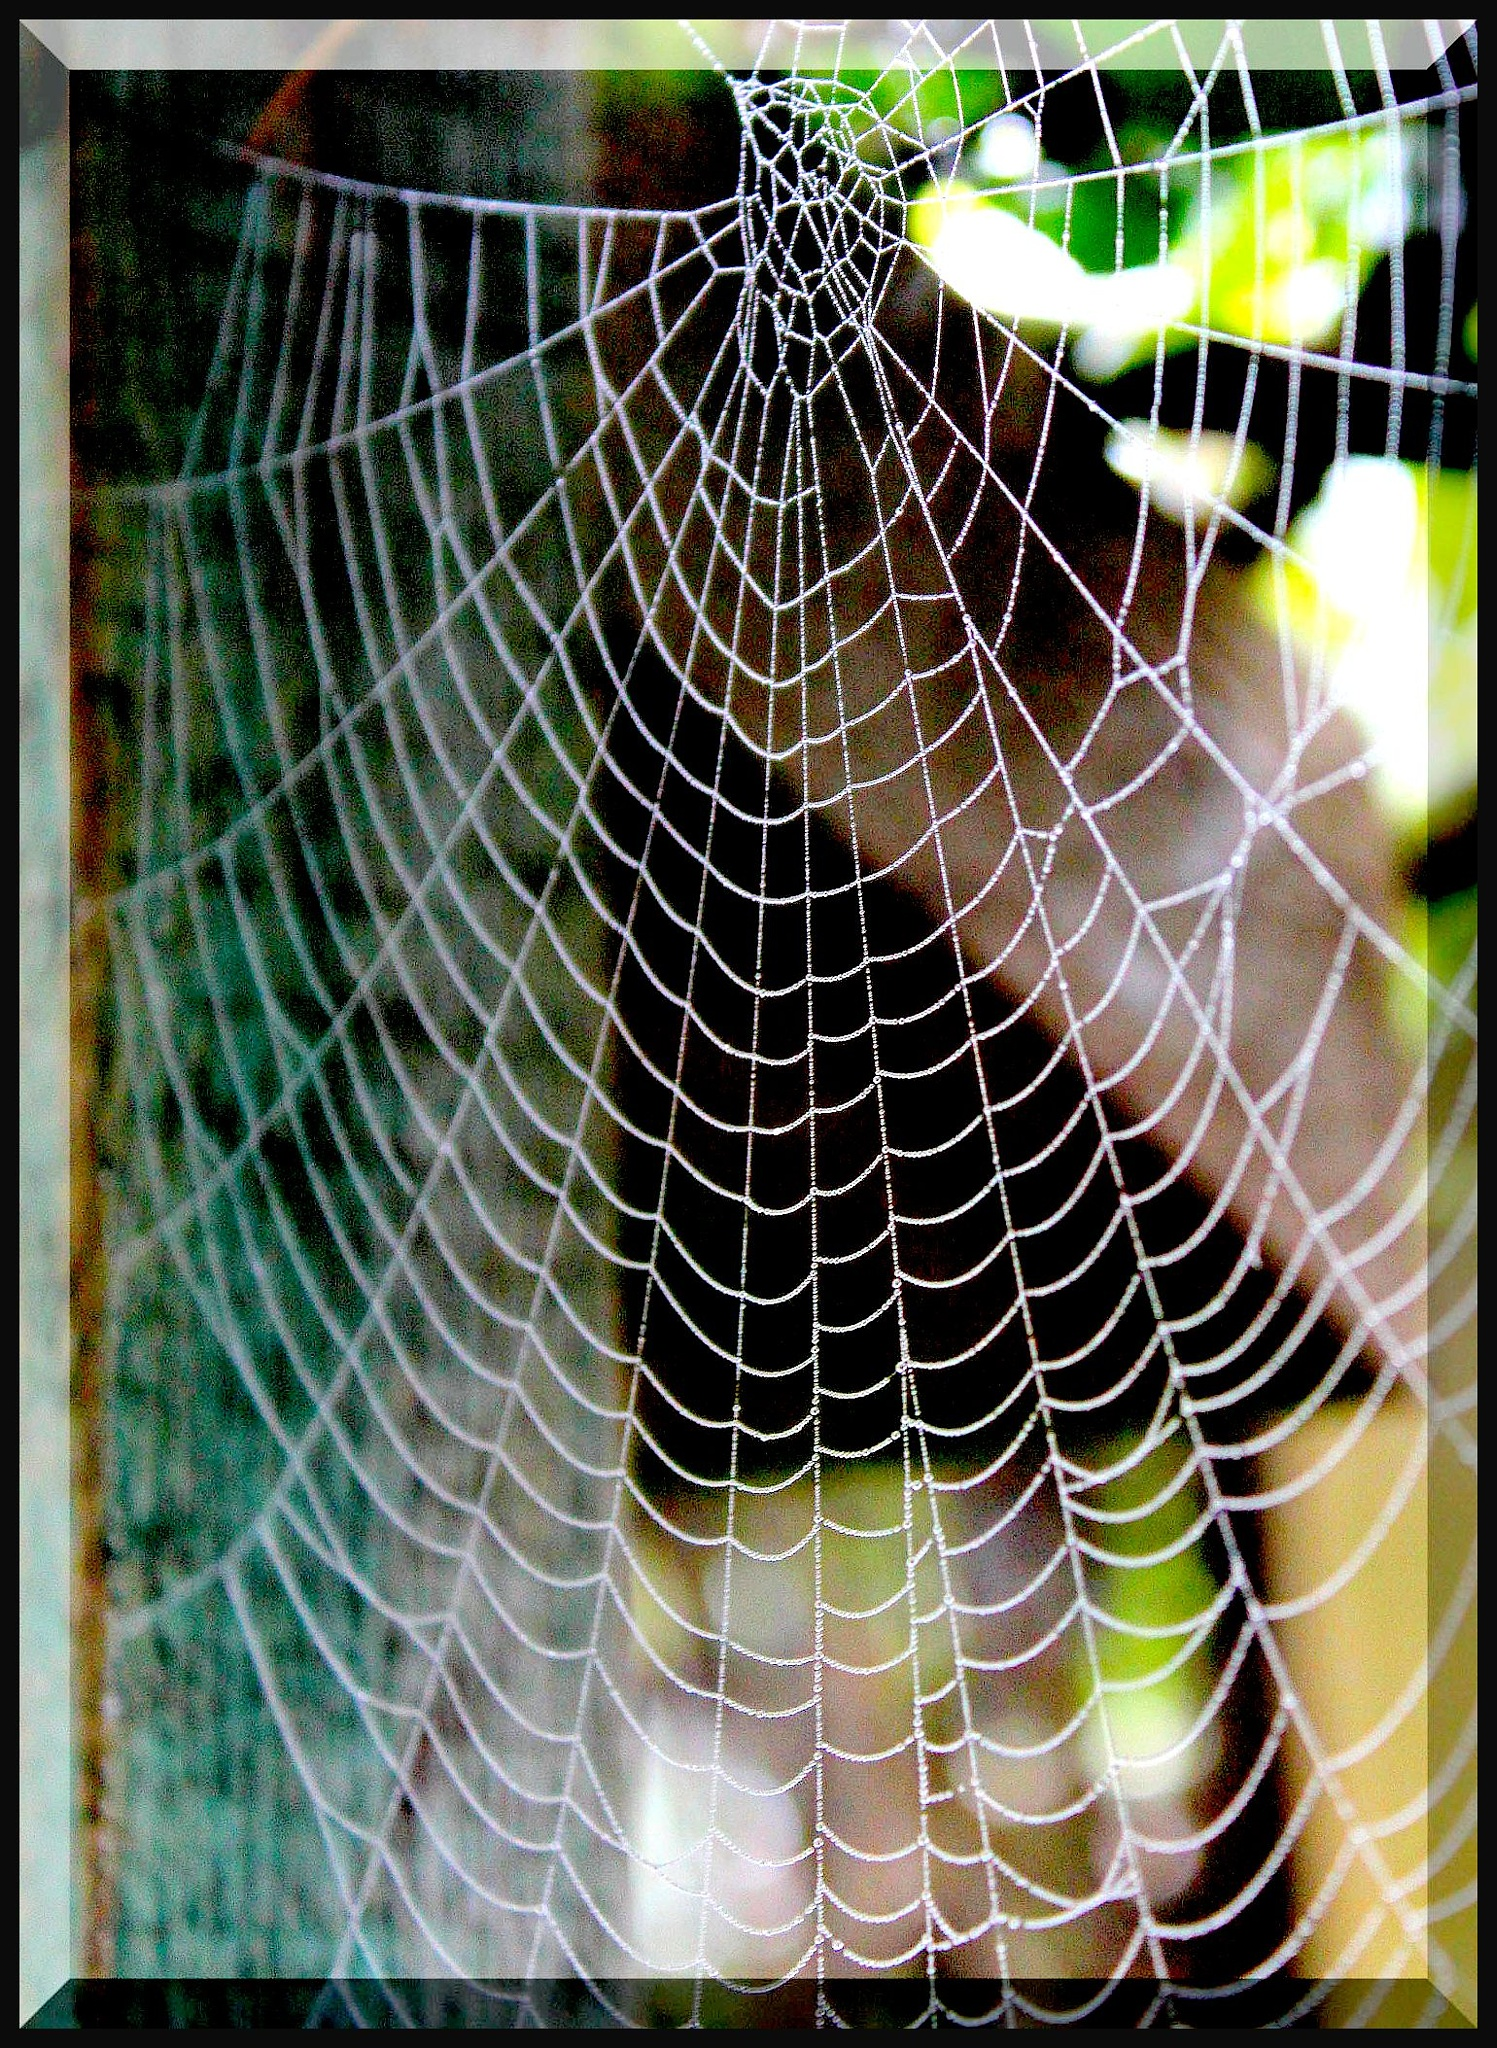 The Web by Terry Jackson